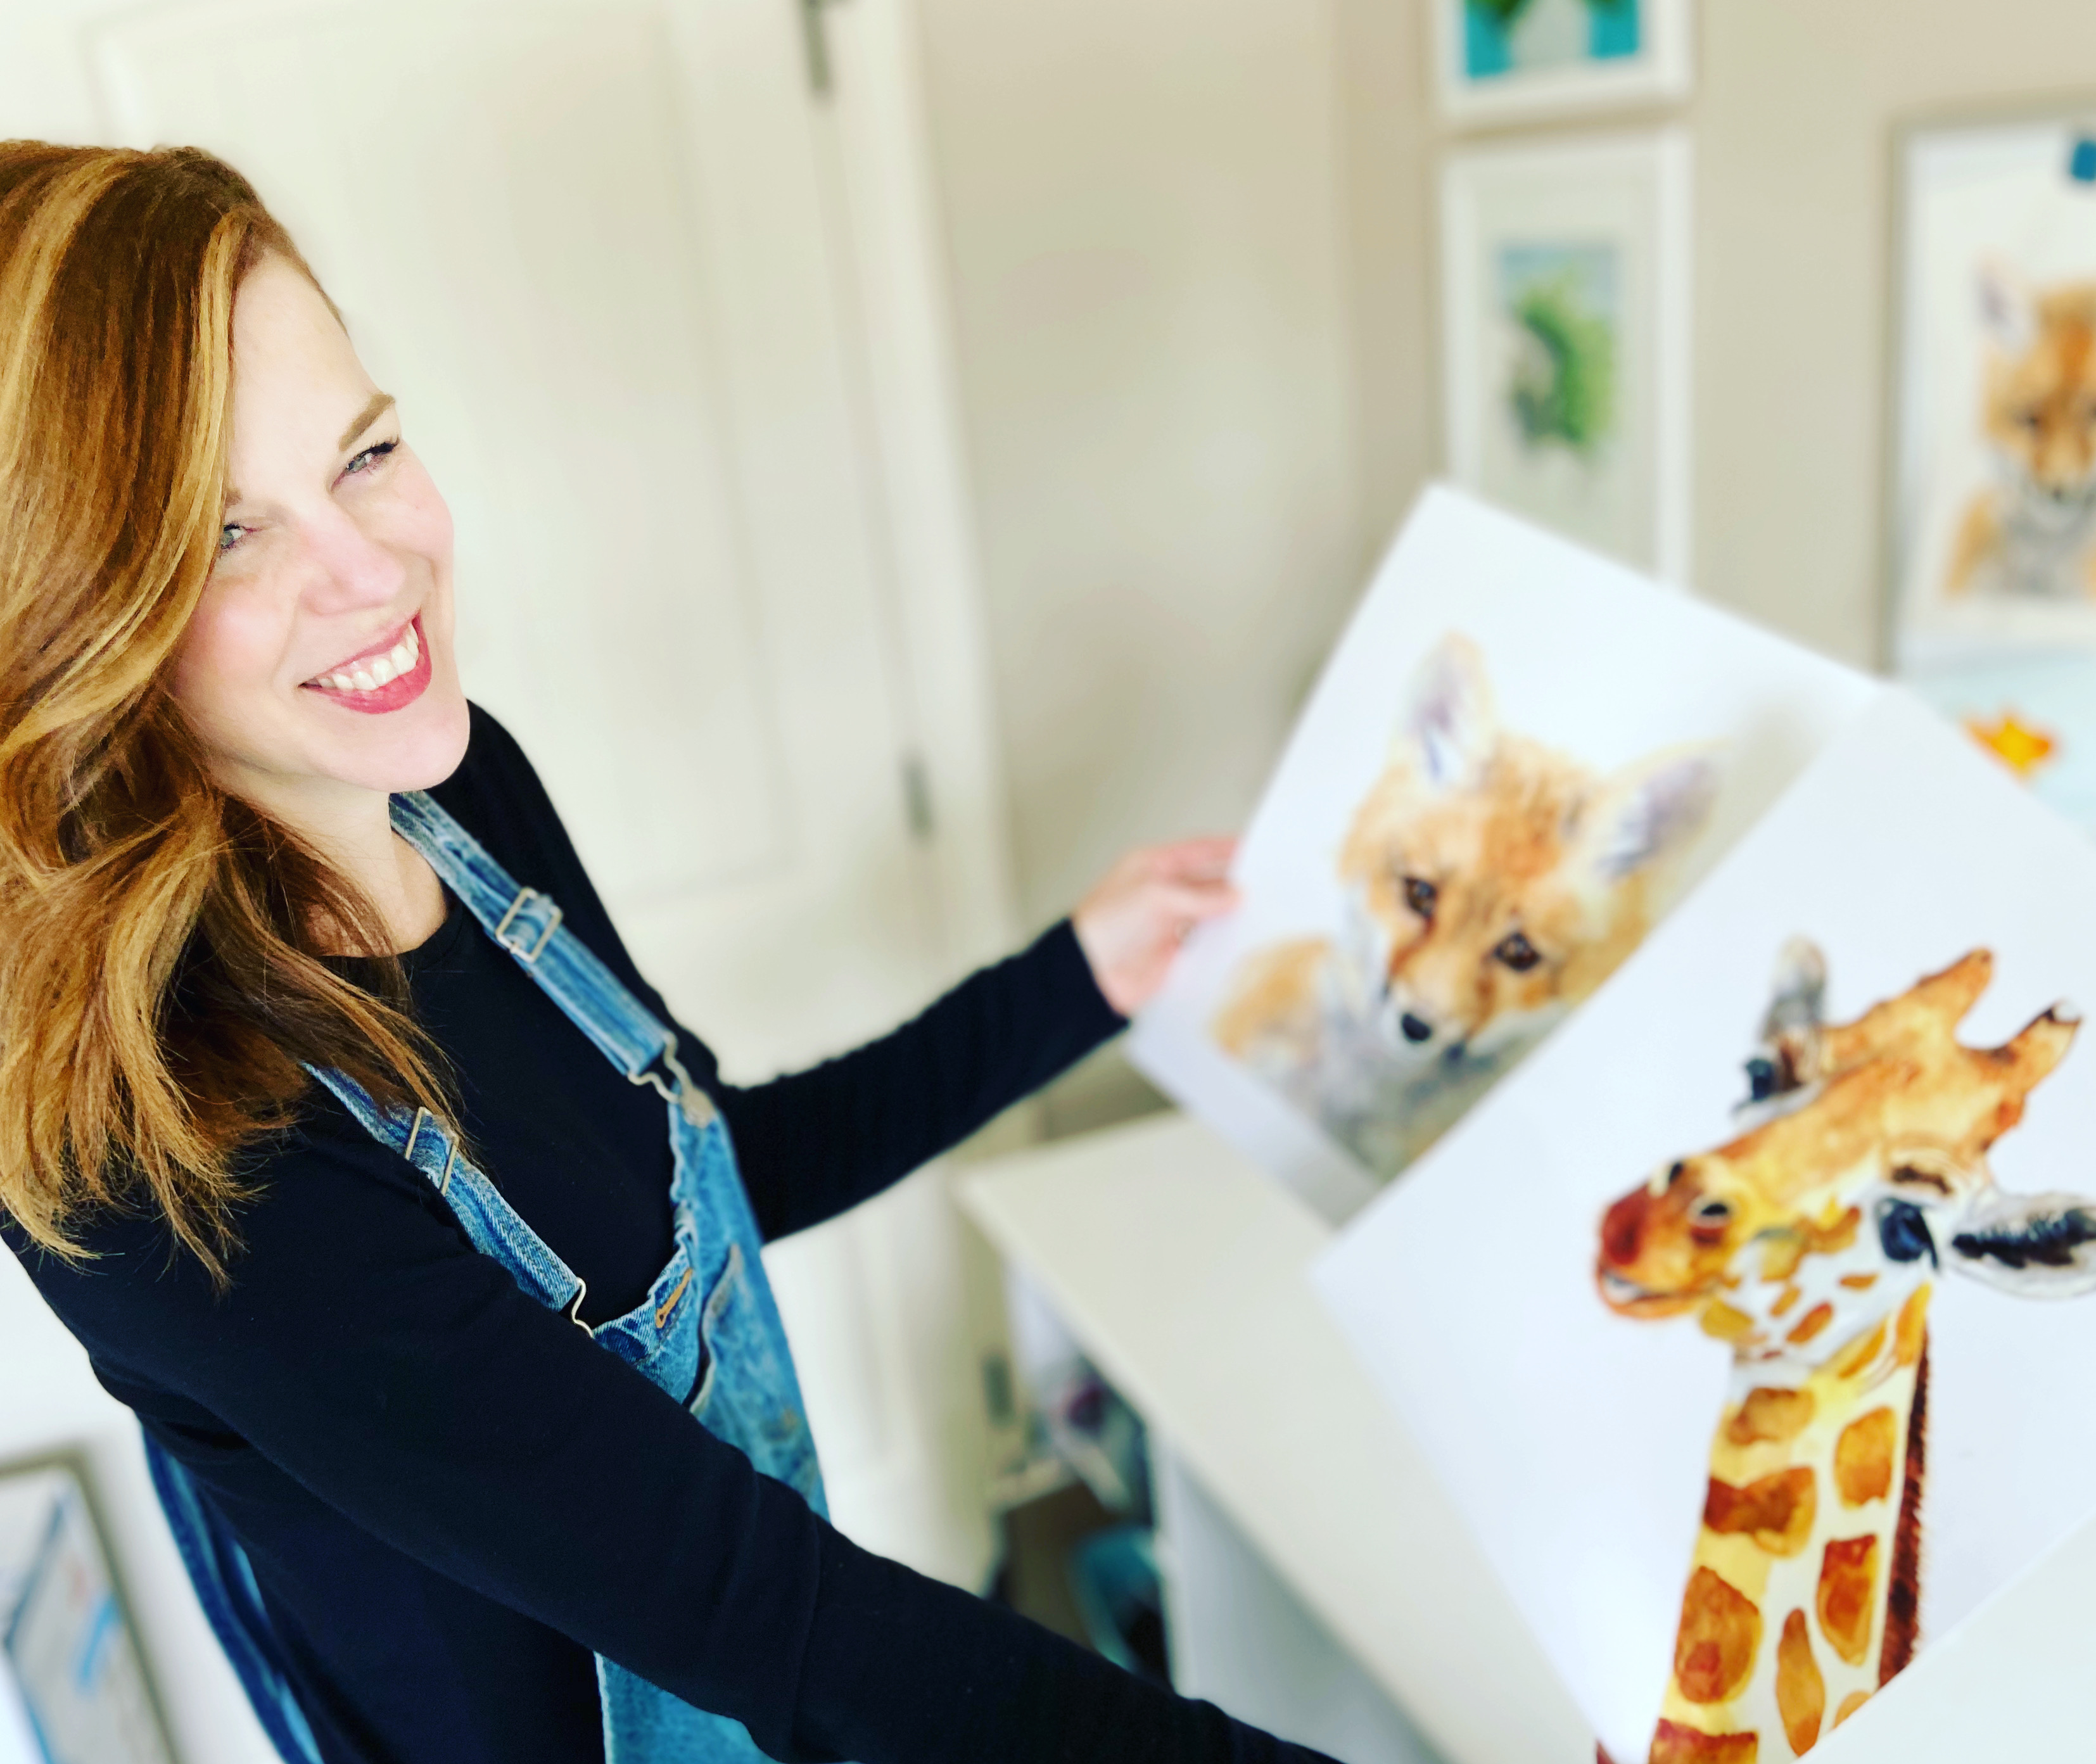 Minuteman Press helps Andrea Nelson bring her art business to life.